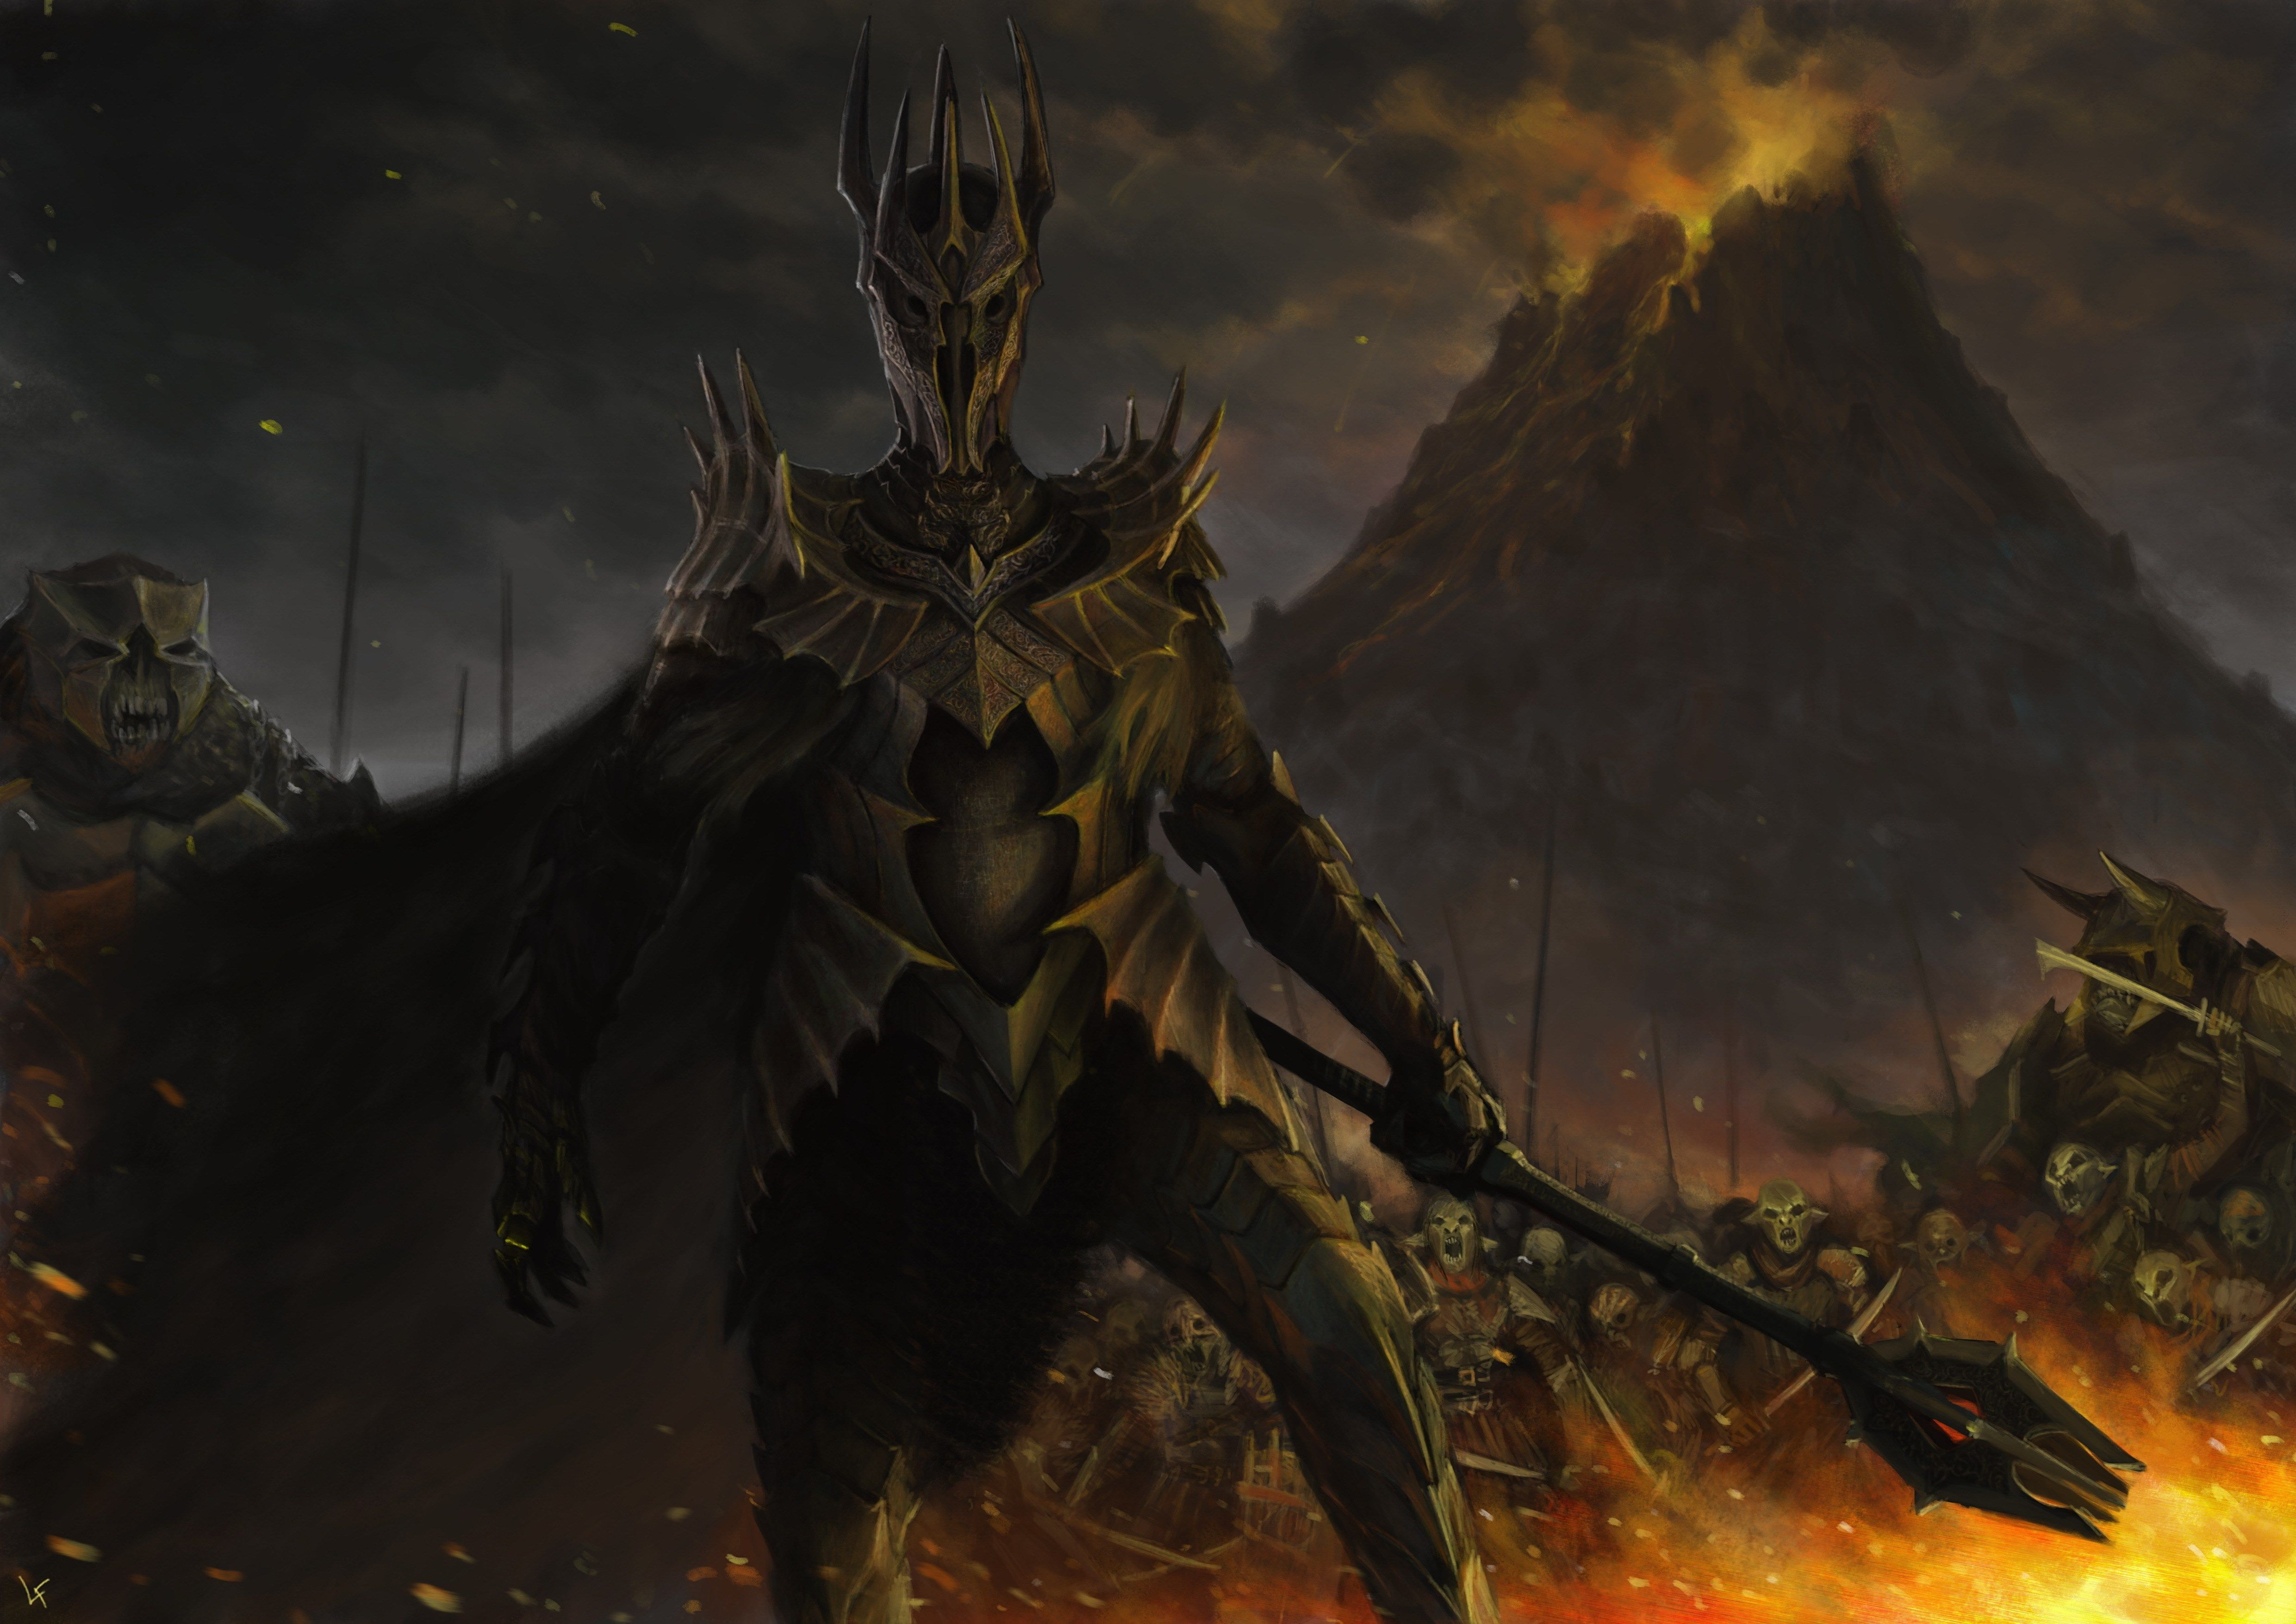 Warrior For Desktop Hd 4961x3508 Lord Sauron Lord Of The Rings Dark Lord